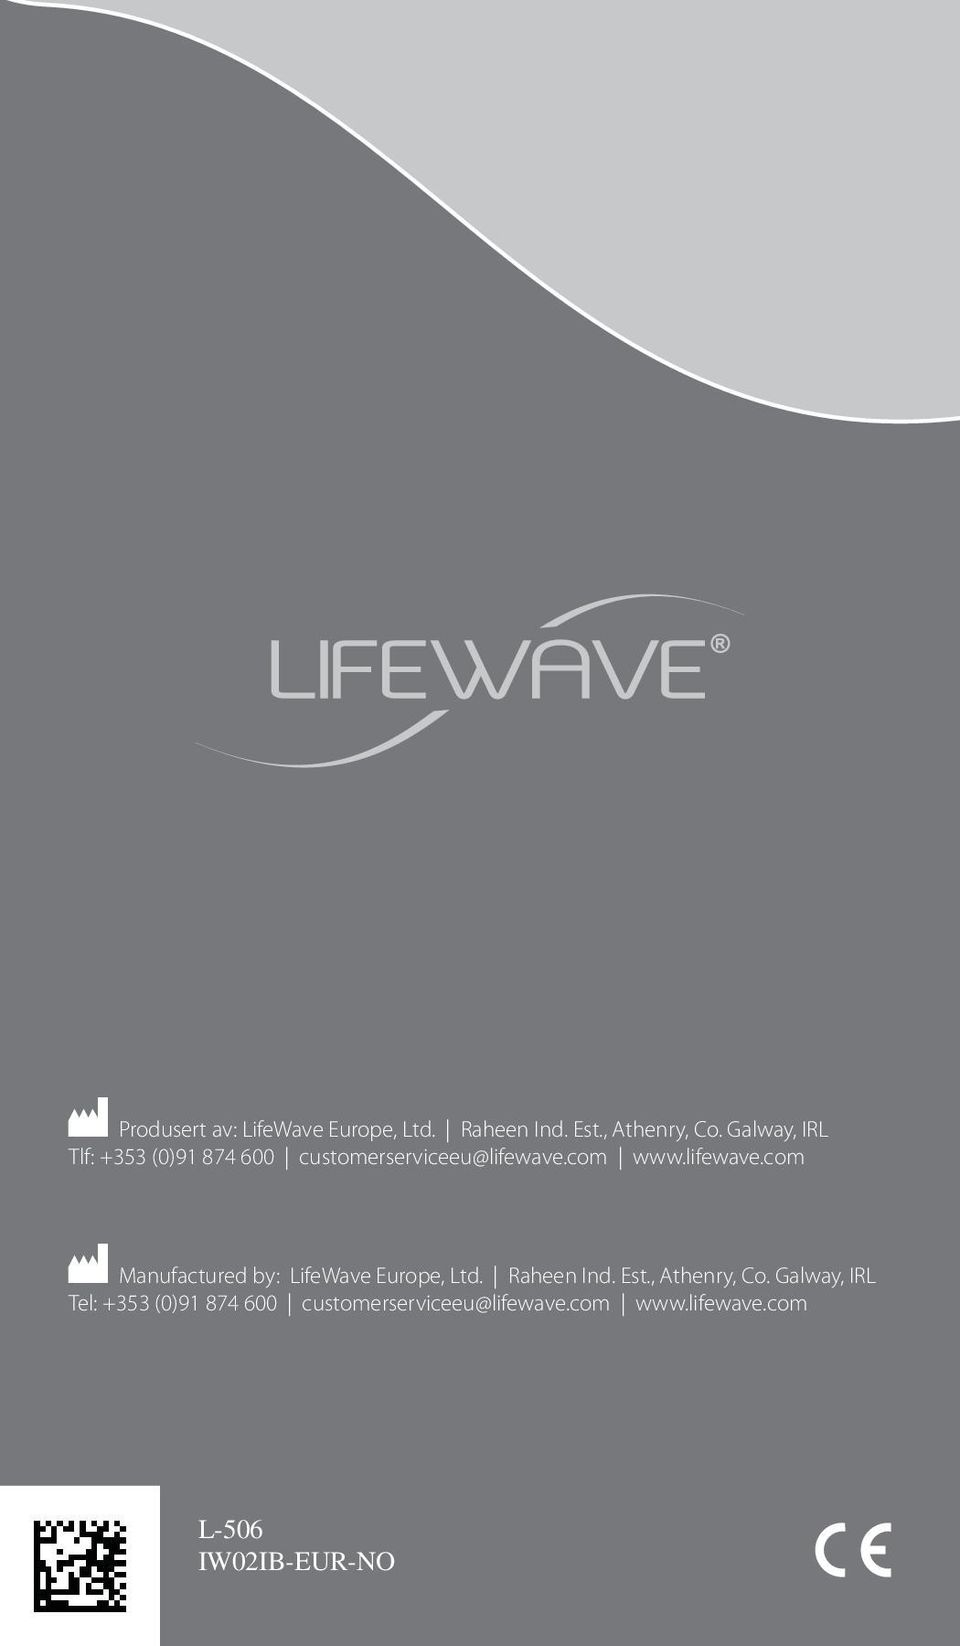 com www.lifewave.com M Manufactured by: LifeWave Europe, Ltd. Raheen Ind. Est.